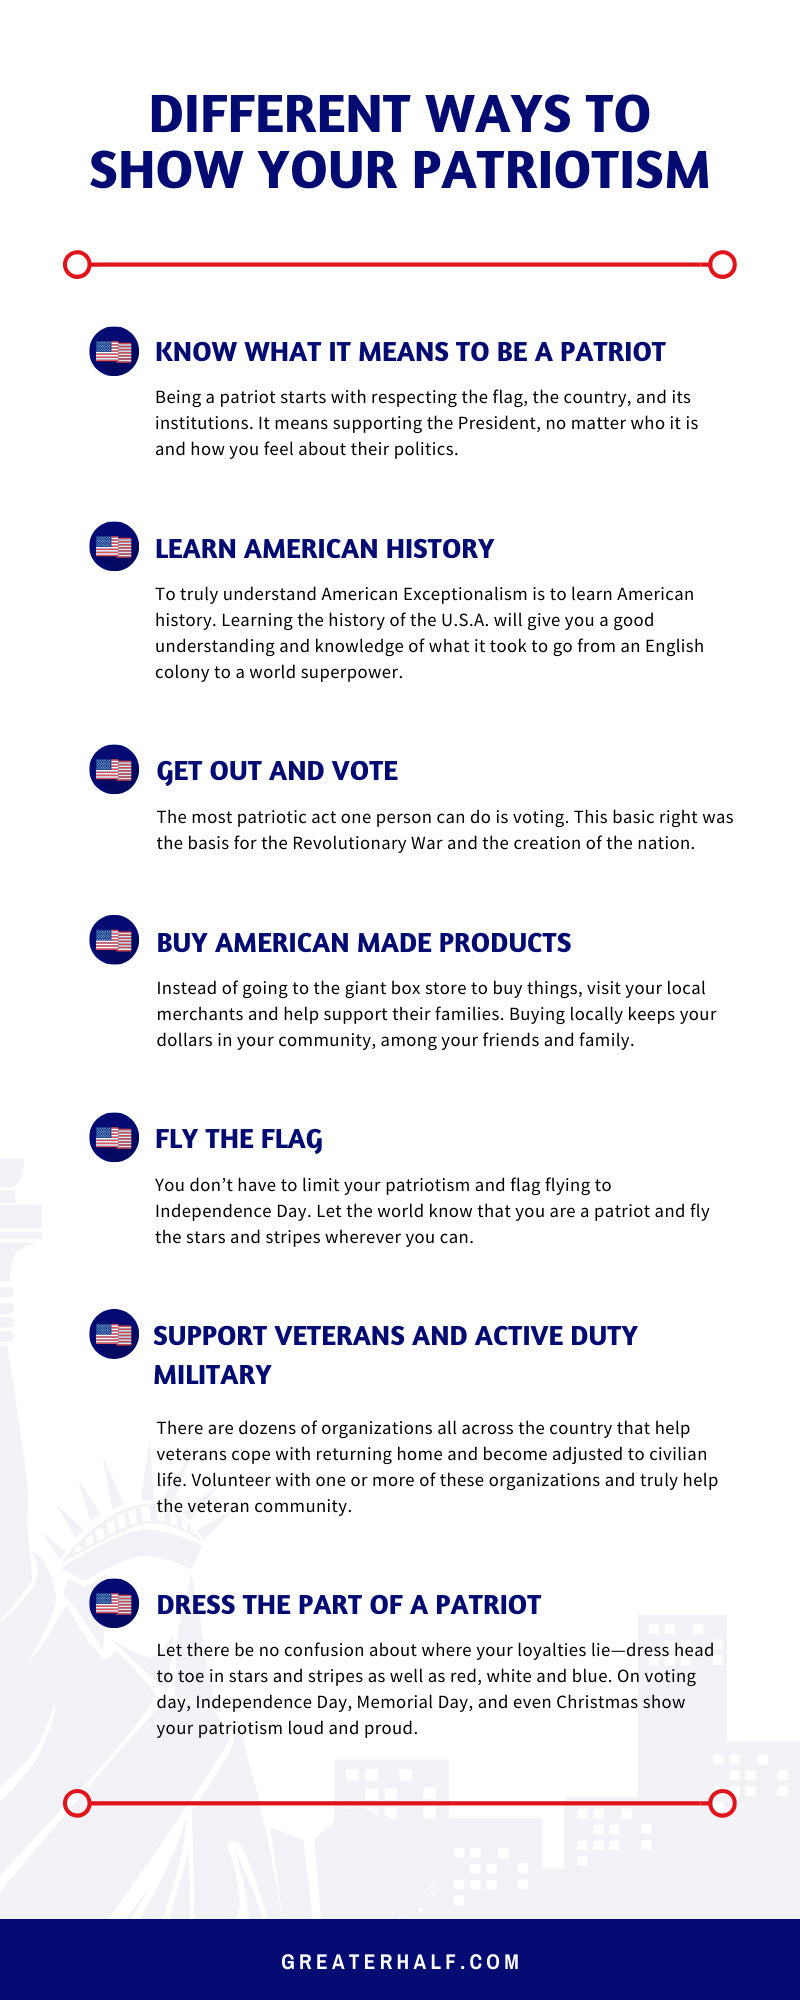 Different Ways to Show Your Patriotism